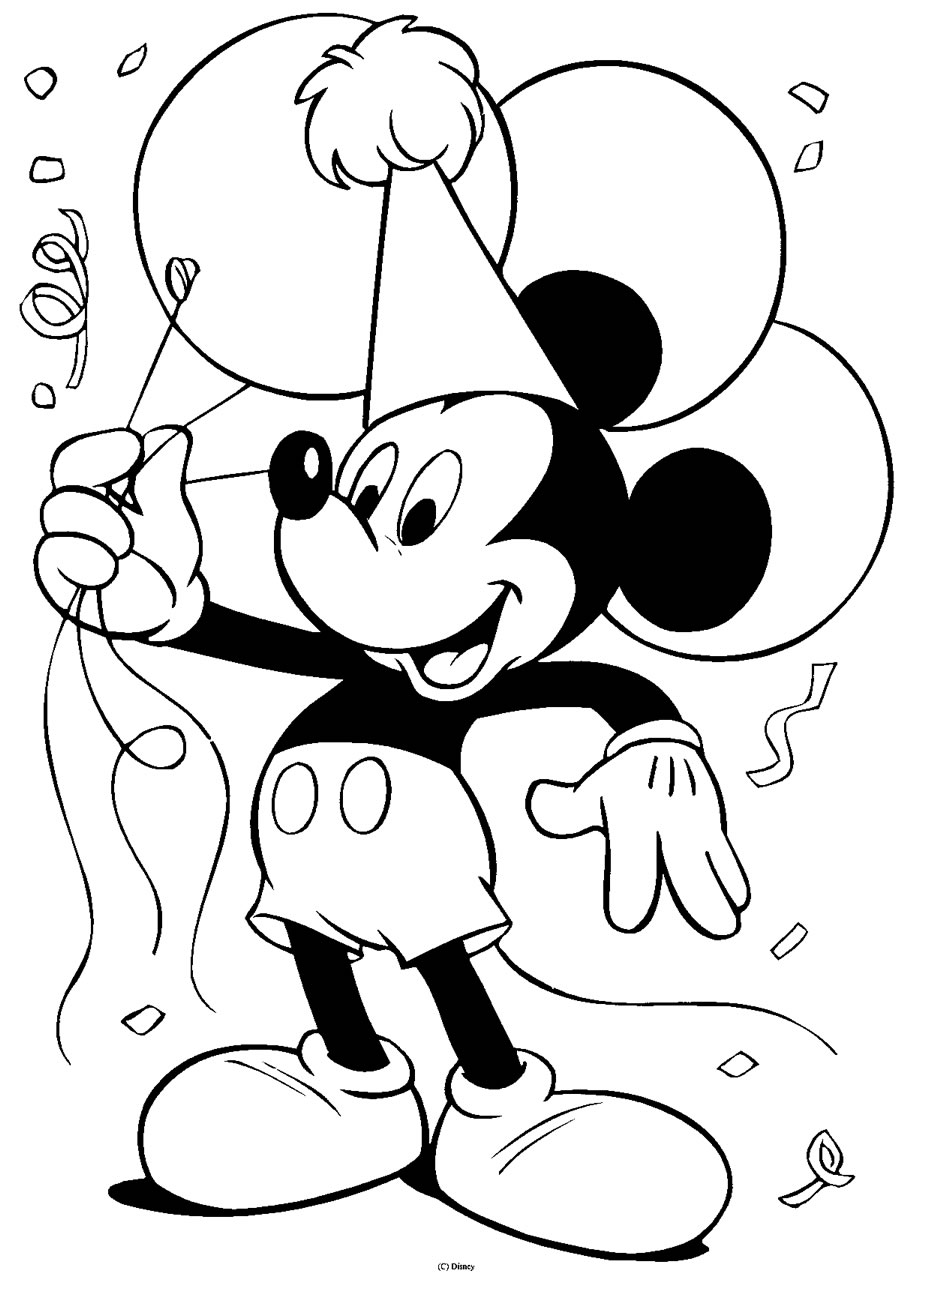 Mickey Mouse Outline Drawing at GetDrawings.com | Free for personal ...